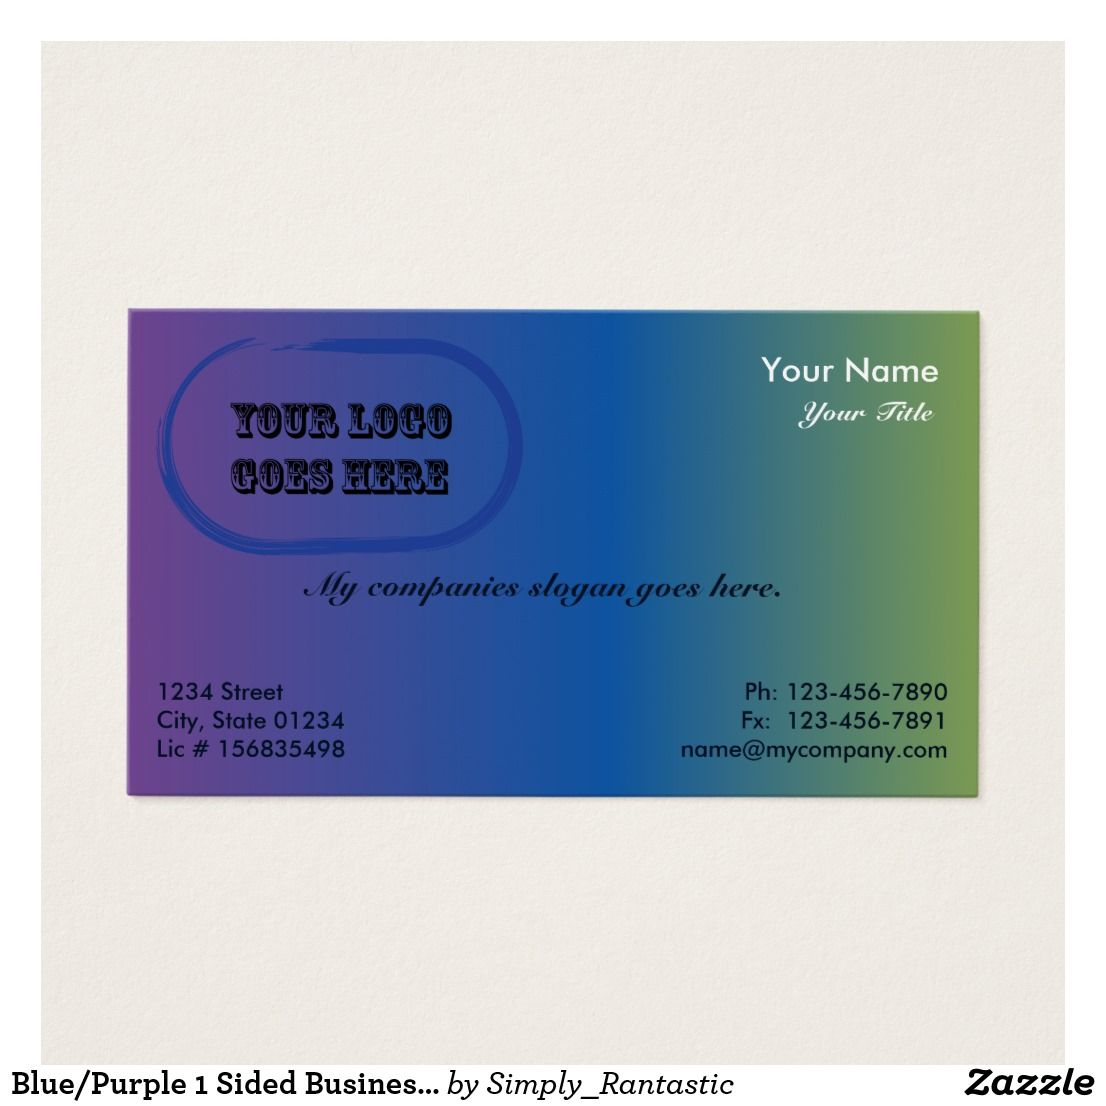 bluepurple 1 sided business card template v2